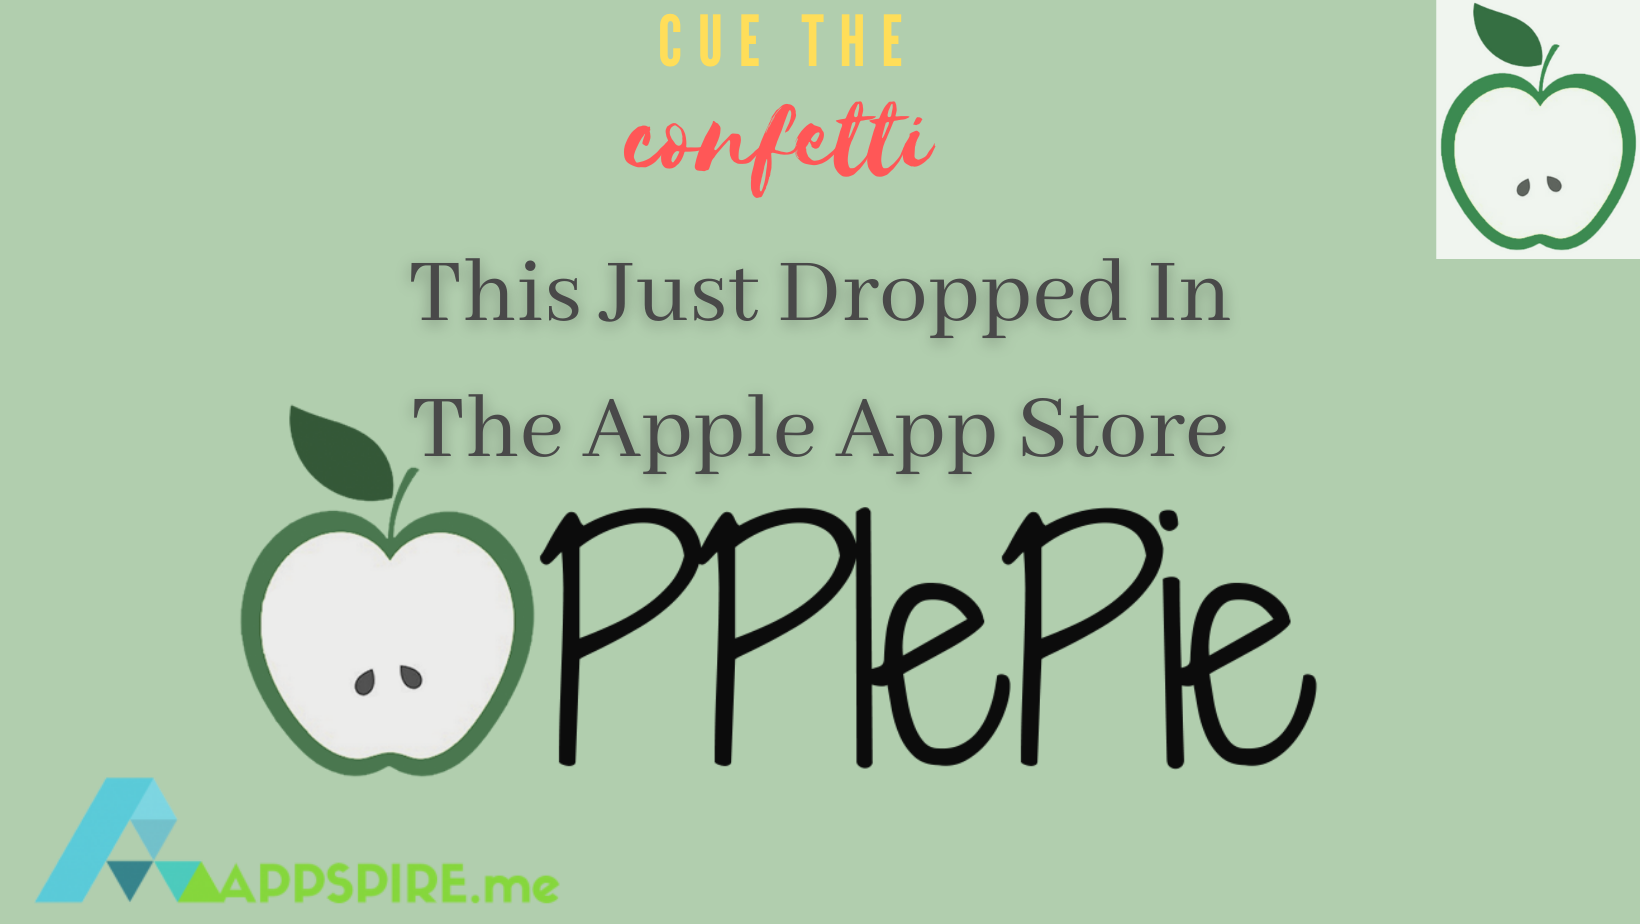 Client Spotlight: Apple Pie Is Now Available